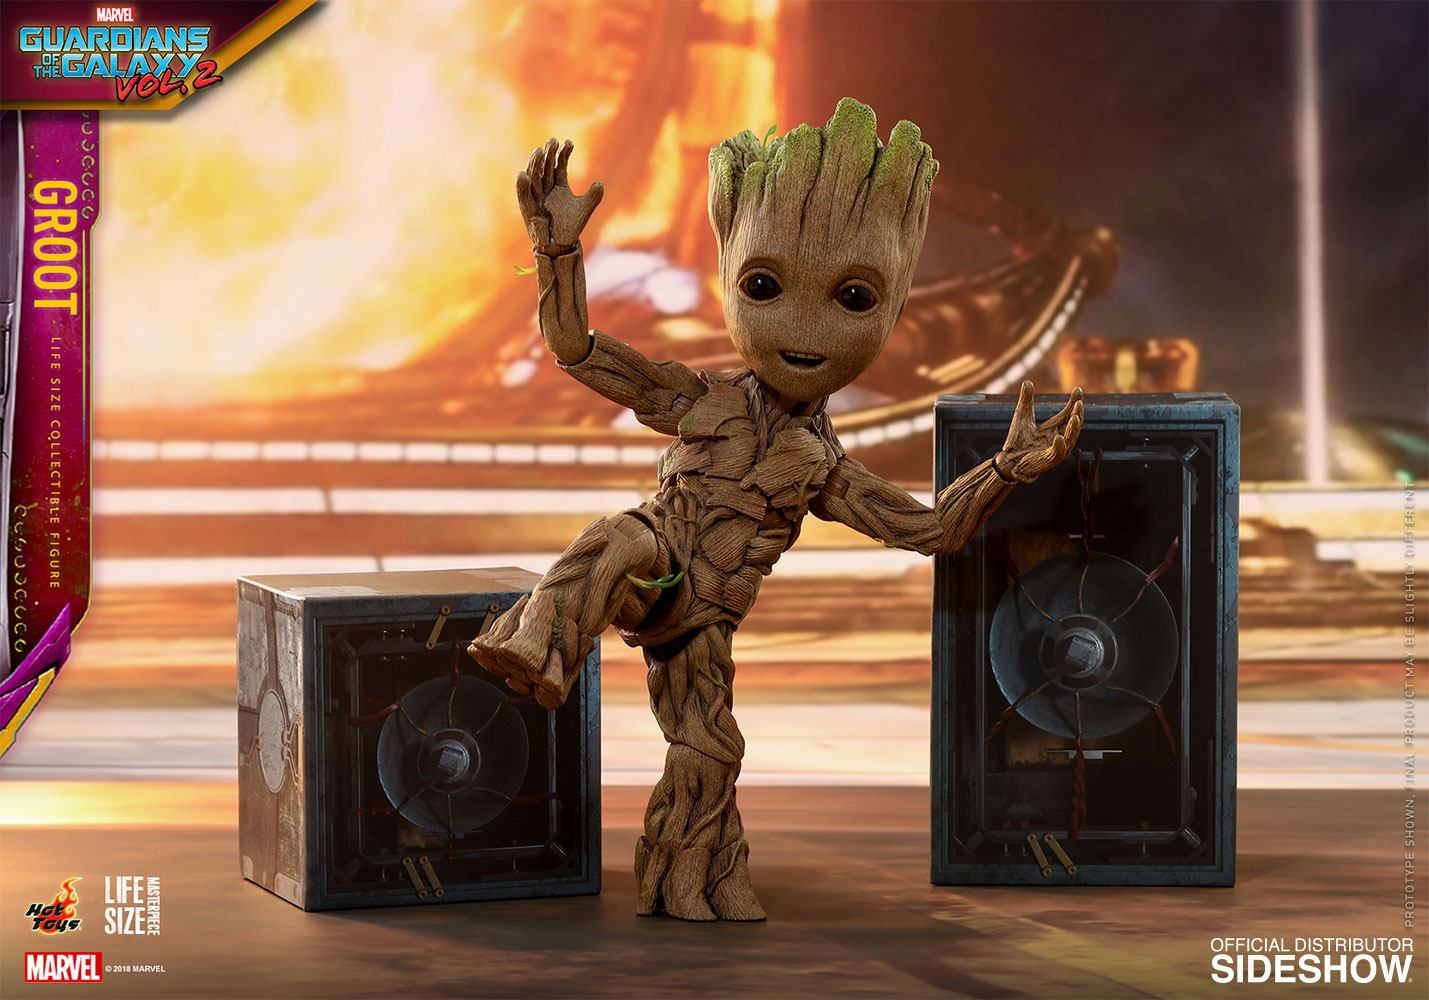 Guardians Of The Galaxy 2 Groot Life Sized Version 2